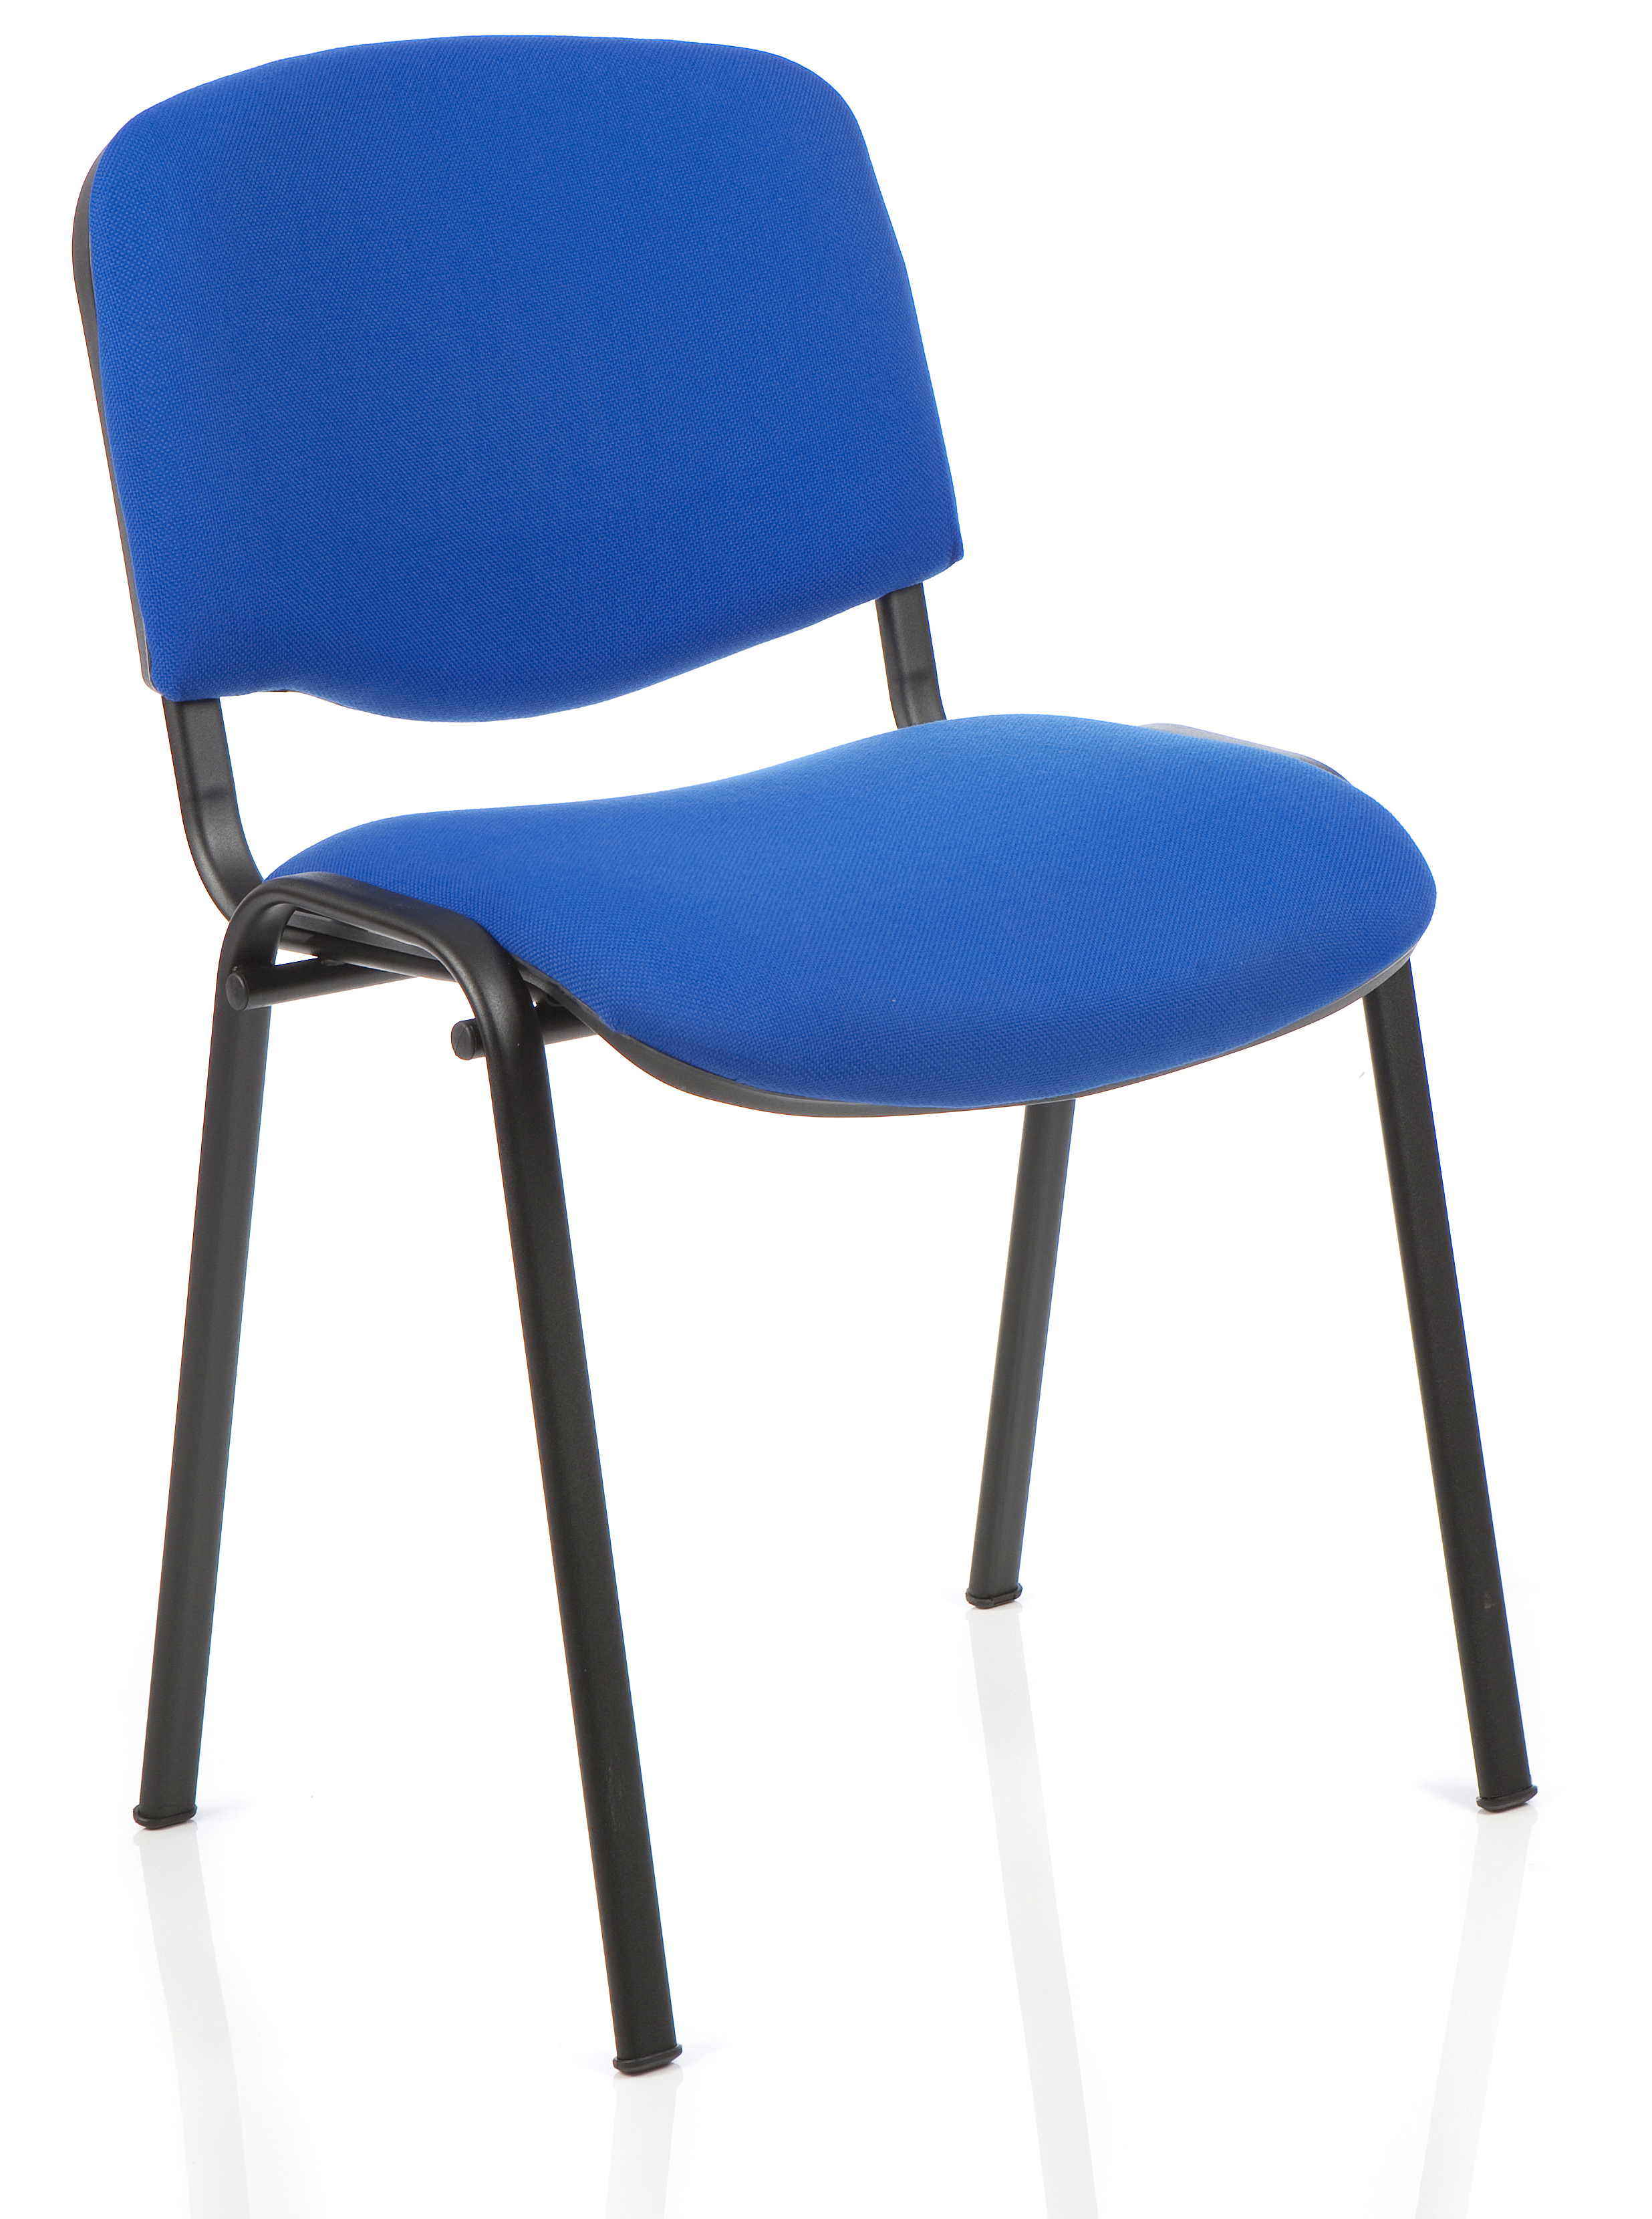 Stacking Chairs ISO Stacking Chair Blue Fabric Black Frame BR000057